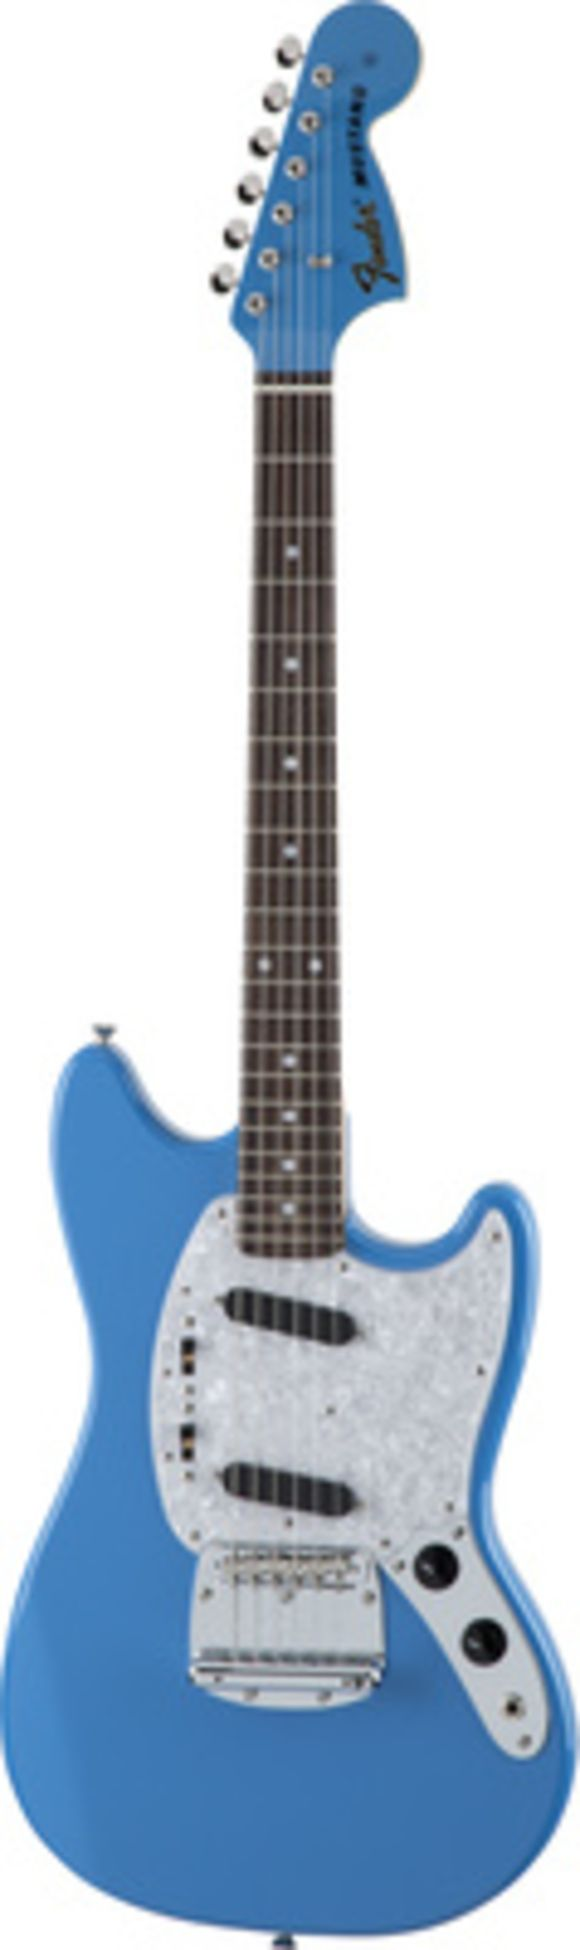 Traditional 70s Mustang Blue Fender